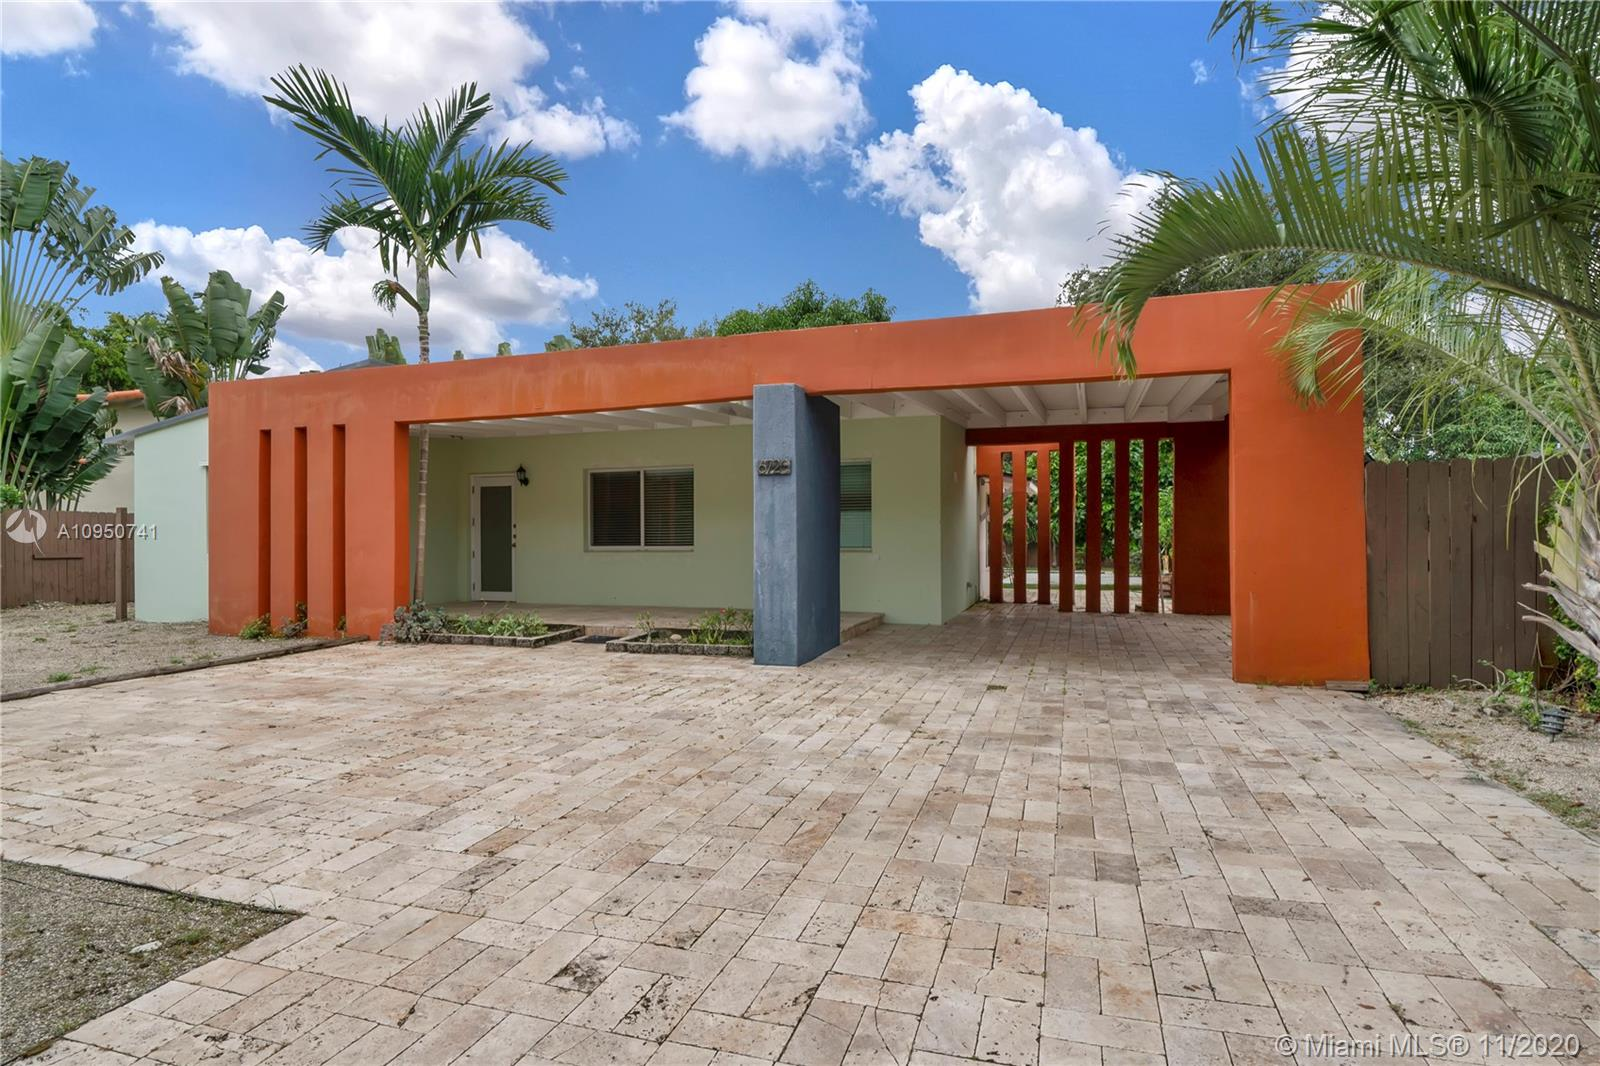 """The attention to the modern architectural details of this impeccable home in the heart of South Miami begins with the undeniably """"WOW"""" effect as soon as you enter the property. The home is bathed in soft light and offers a cozy, yet sophisticated atmosphere. The floor plan is also graced by a spacious family room where beyond the home's large windows and glass doors, the gorgeous backyard beckons for your attention. From its vaulted ceilings and updated kitchen and bathrooms to the spacious bedrooms and the inviting lap pool in the tropical garden, this home is primed for its newest owner. Built on over 10,000 square feet of land and surrounded by luscious grounds, wooden fences and a front iron gate, this property is perfect for privacy seekers with a desire for beauty."""